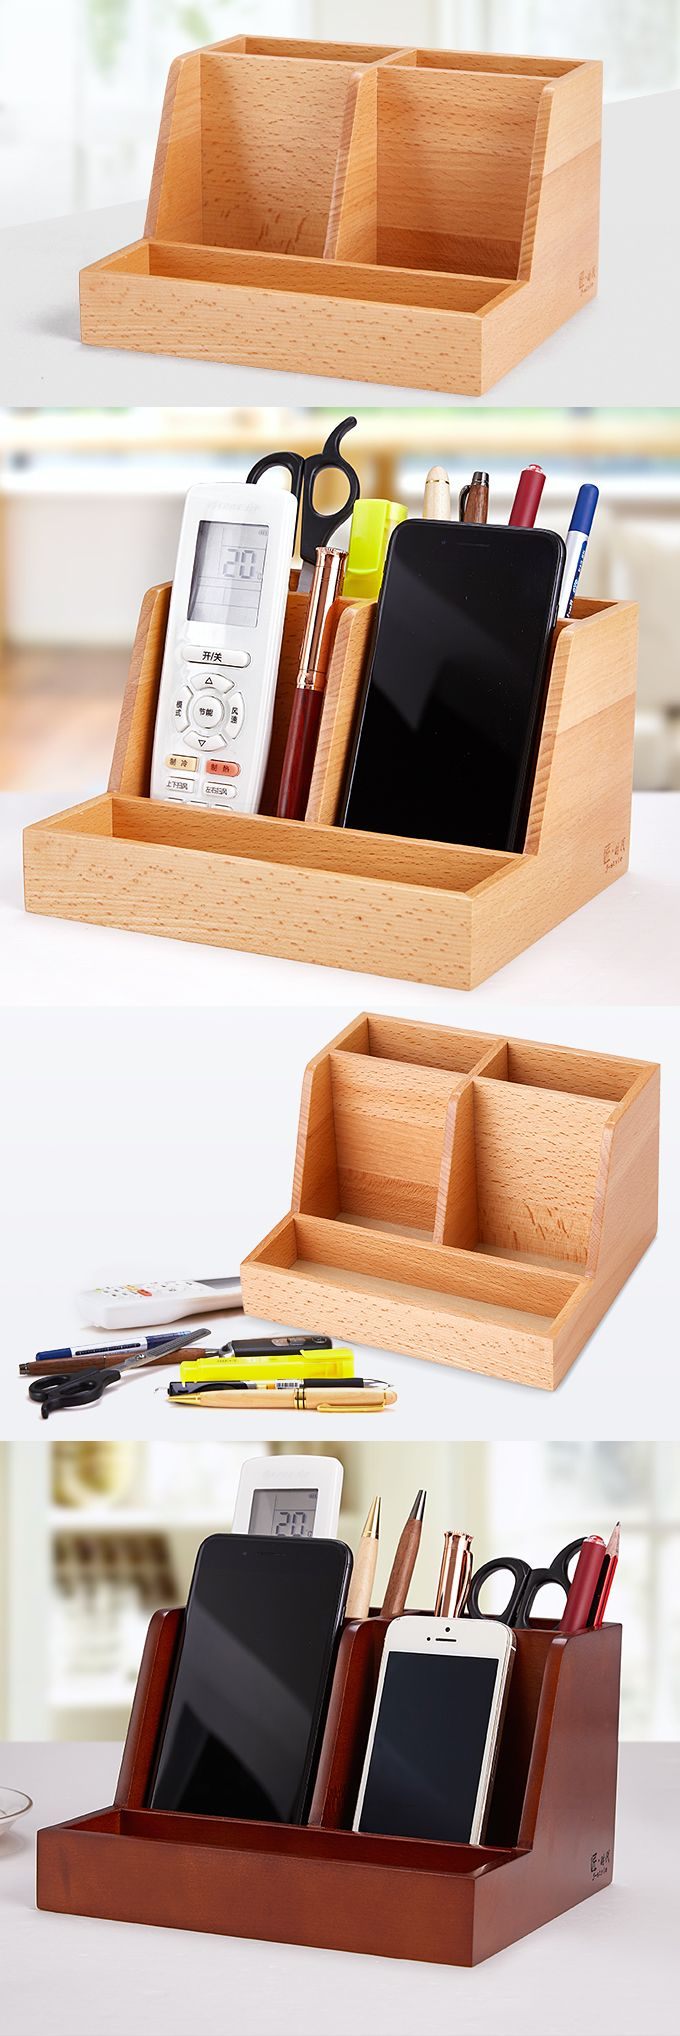 Bamboo Wooden Office Desk Organizer Storage Box Pencil Holder Business Card Holder Smart Phone Mobile Phone Dock Stand Paper Clip Holder Collection Storage Box Organizer Remote control holder Organizer Memo Holder - Phone Stand